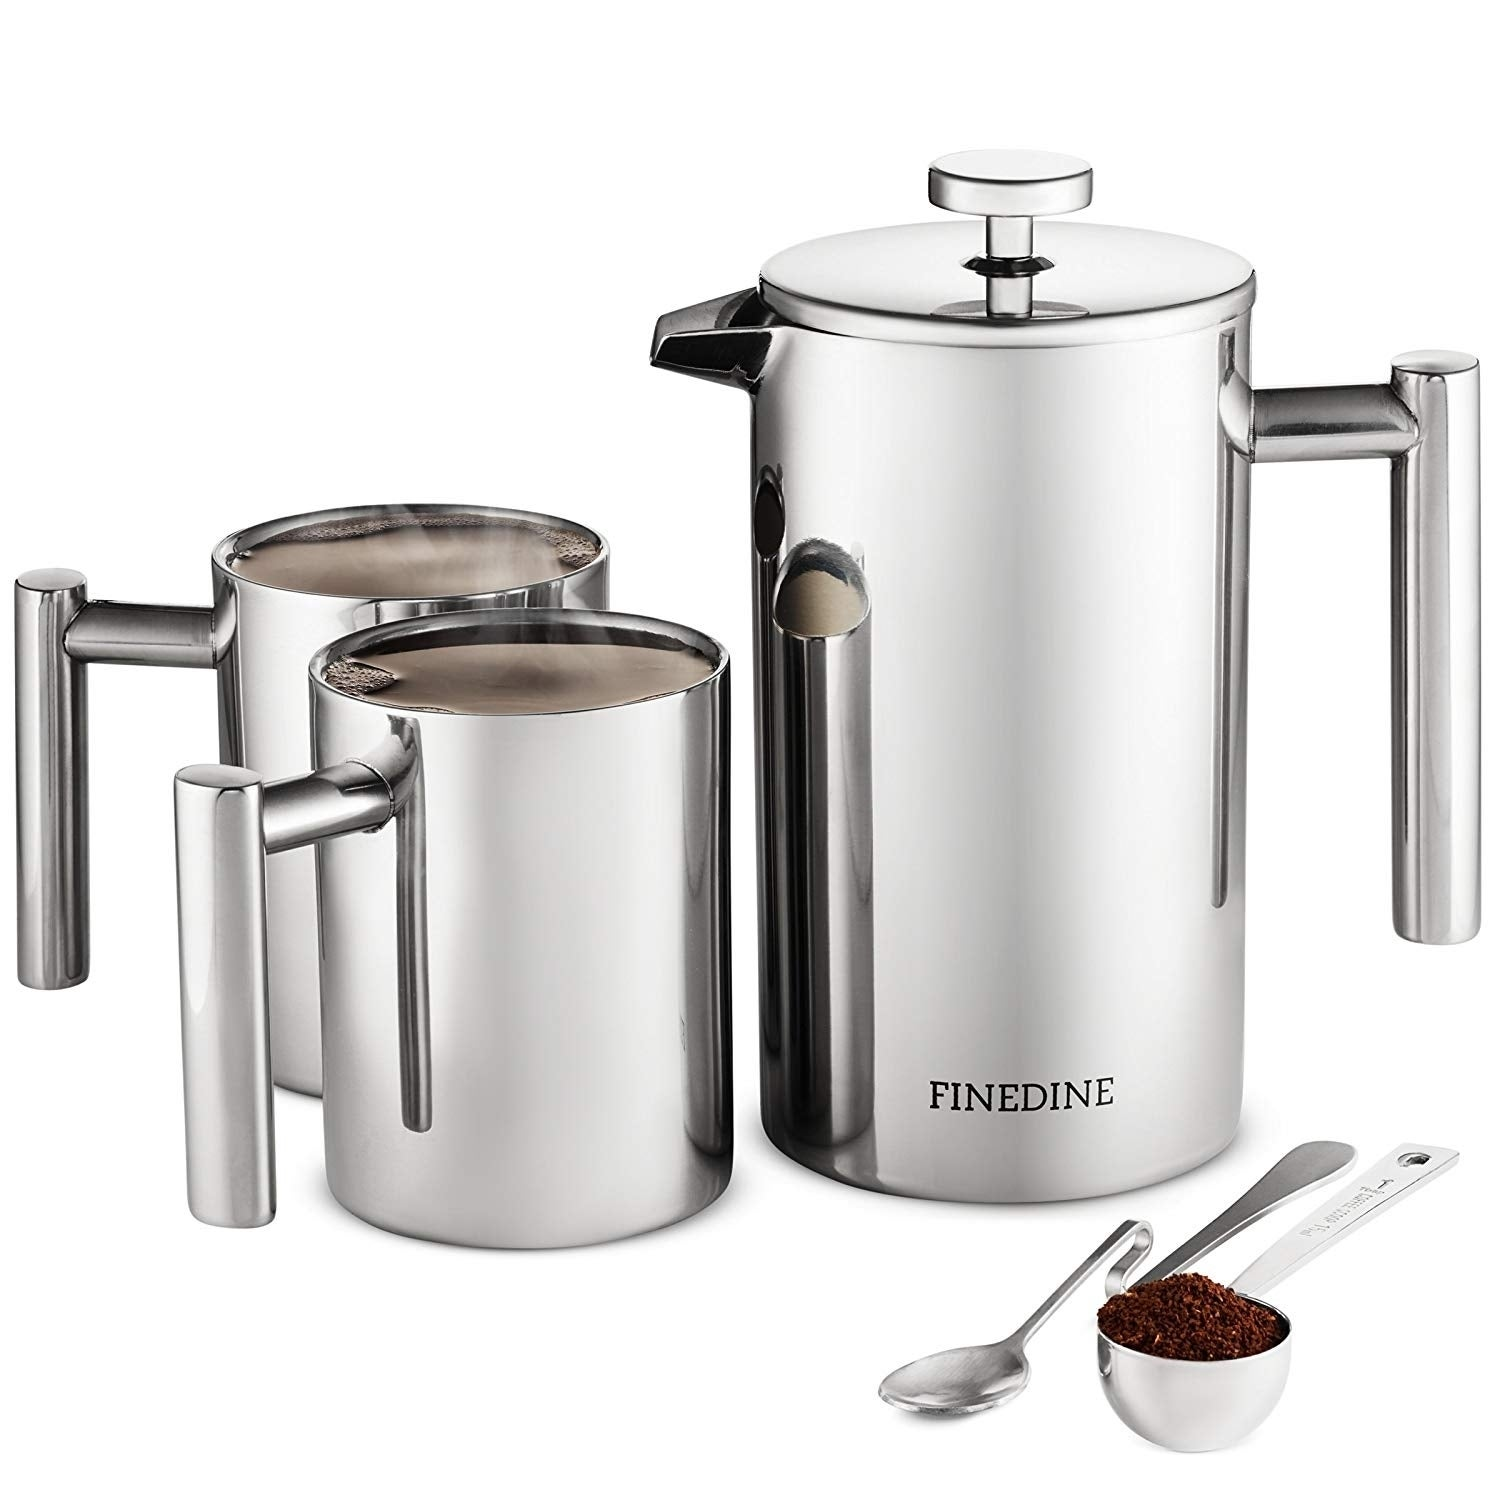 French Press Coffee Maker Set 5 Pieces Stainless Steel Double Wall Coffee Press 34 Oz With 2 Coffee Mugs Spoon And Scoop Overstock 22972092